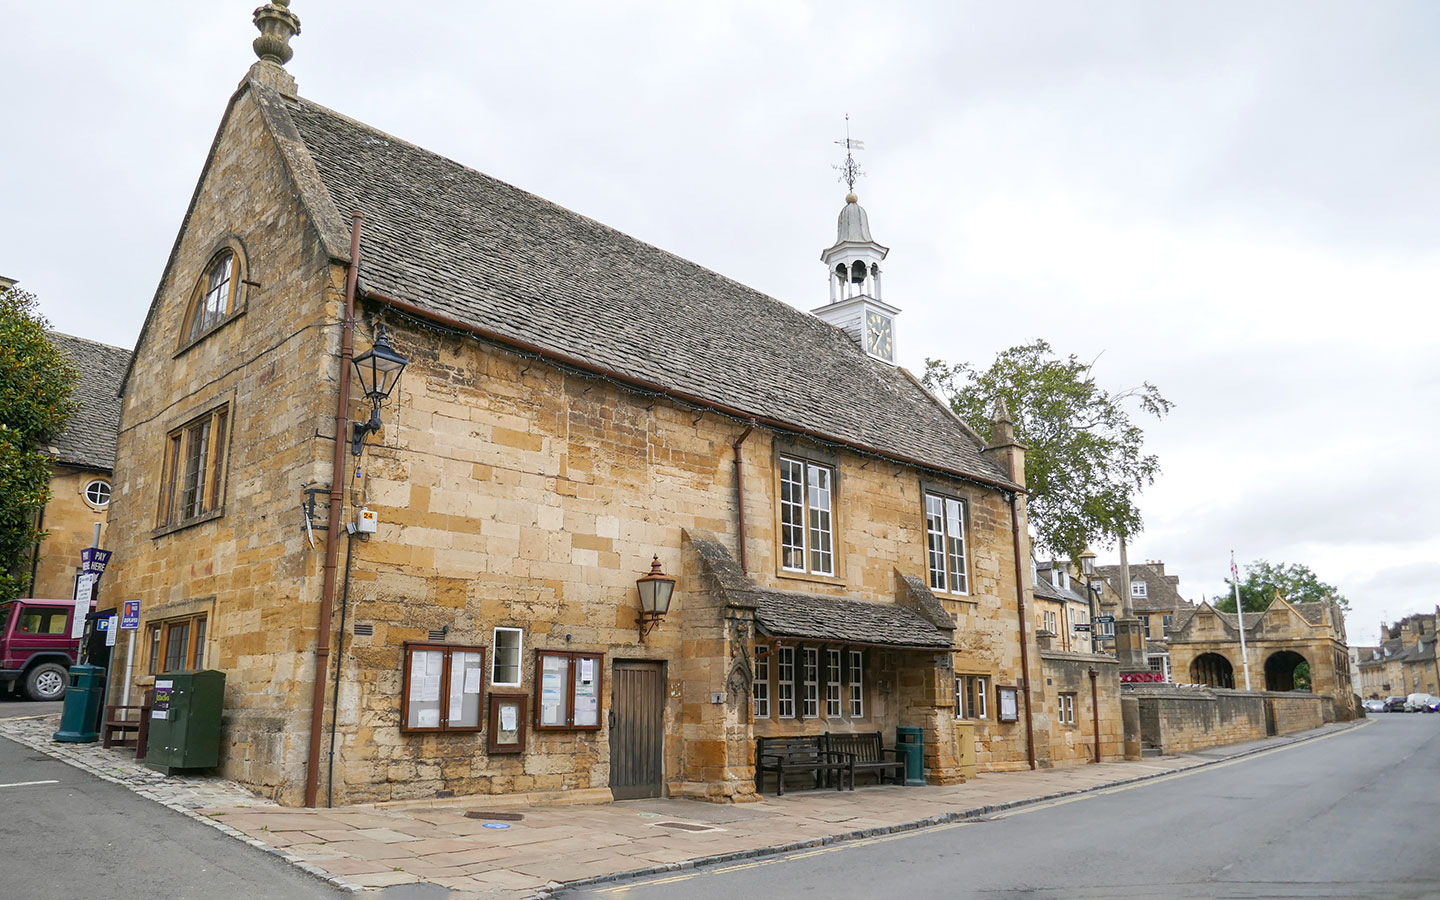 Chipping Campden's Town Hall